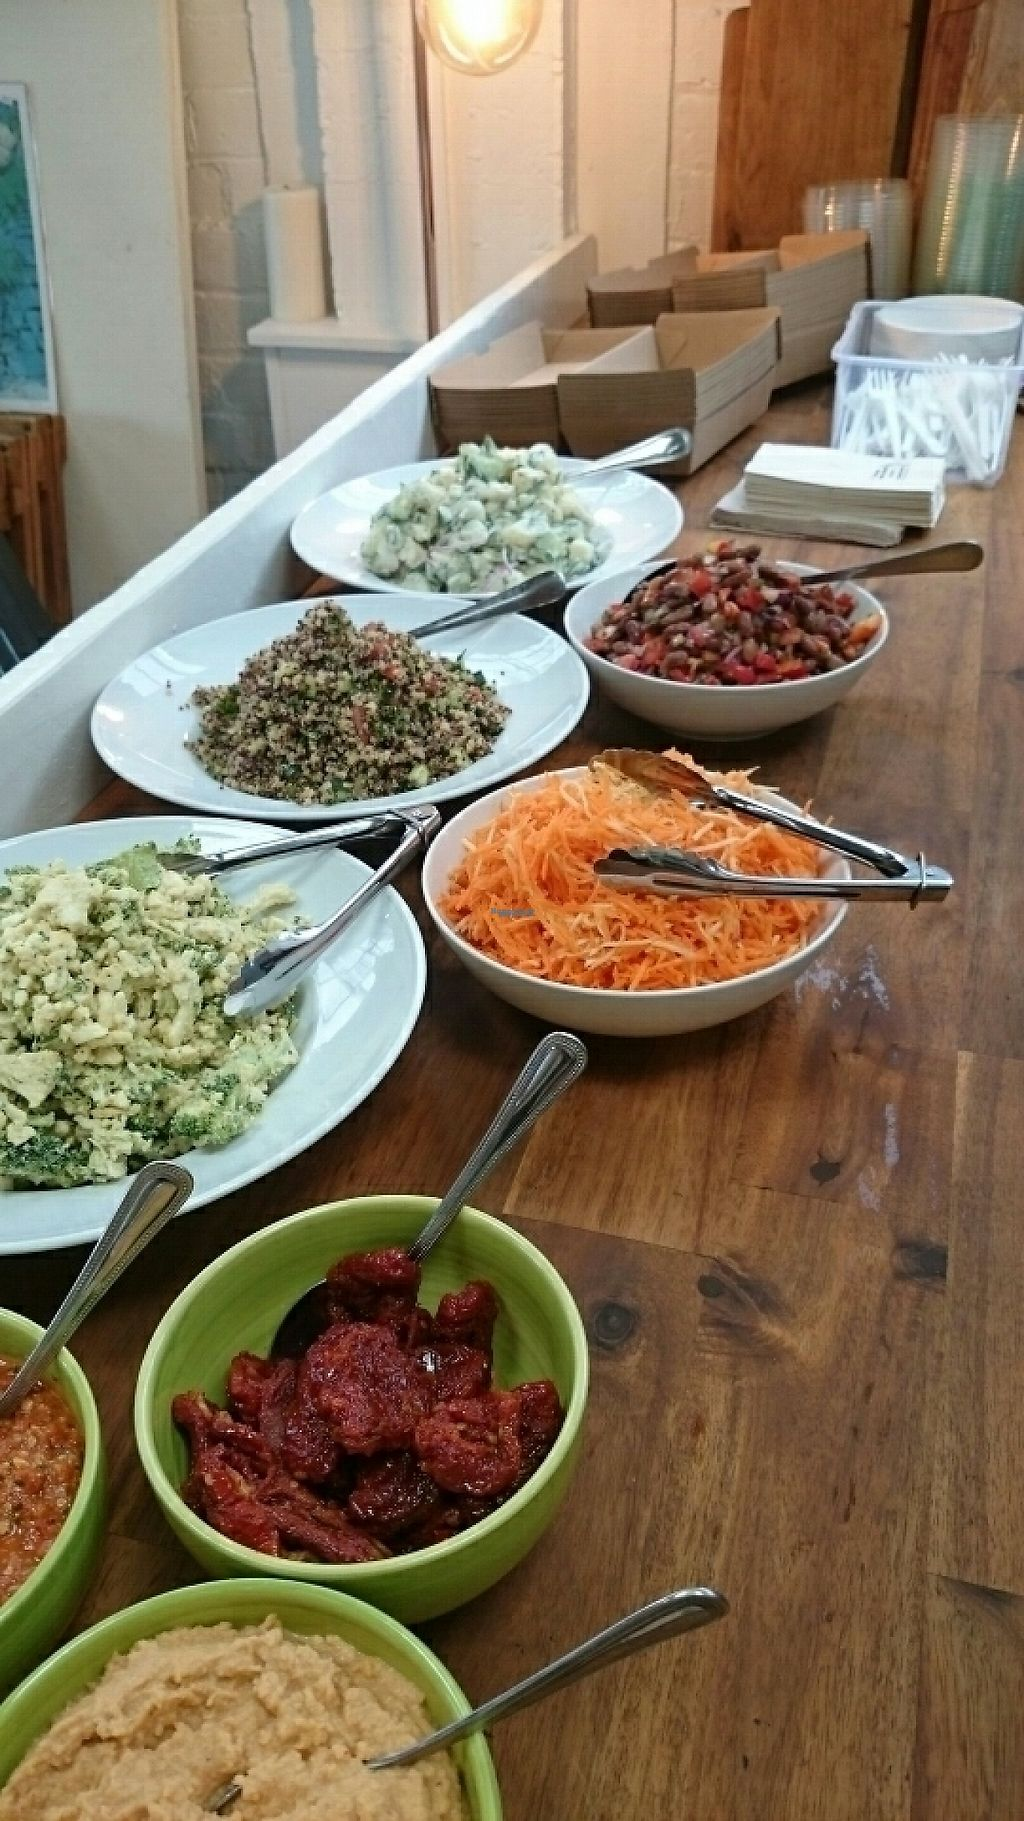 """Photo of The Art Kitchen  by <a href=""""/members/profile/srauth"""">srauth</a> <br/>Yummy salads  <br/> March 16, 2017  - <a href='/contact/abuse/image/88076/236919'>Report</a>"""